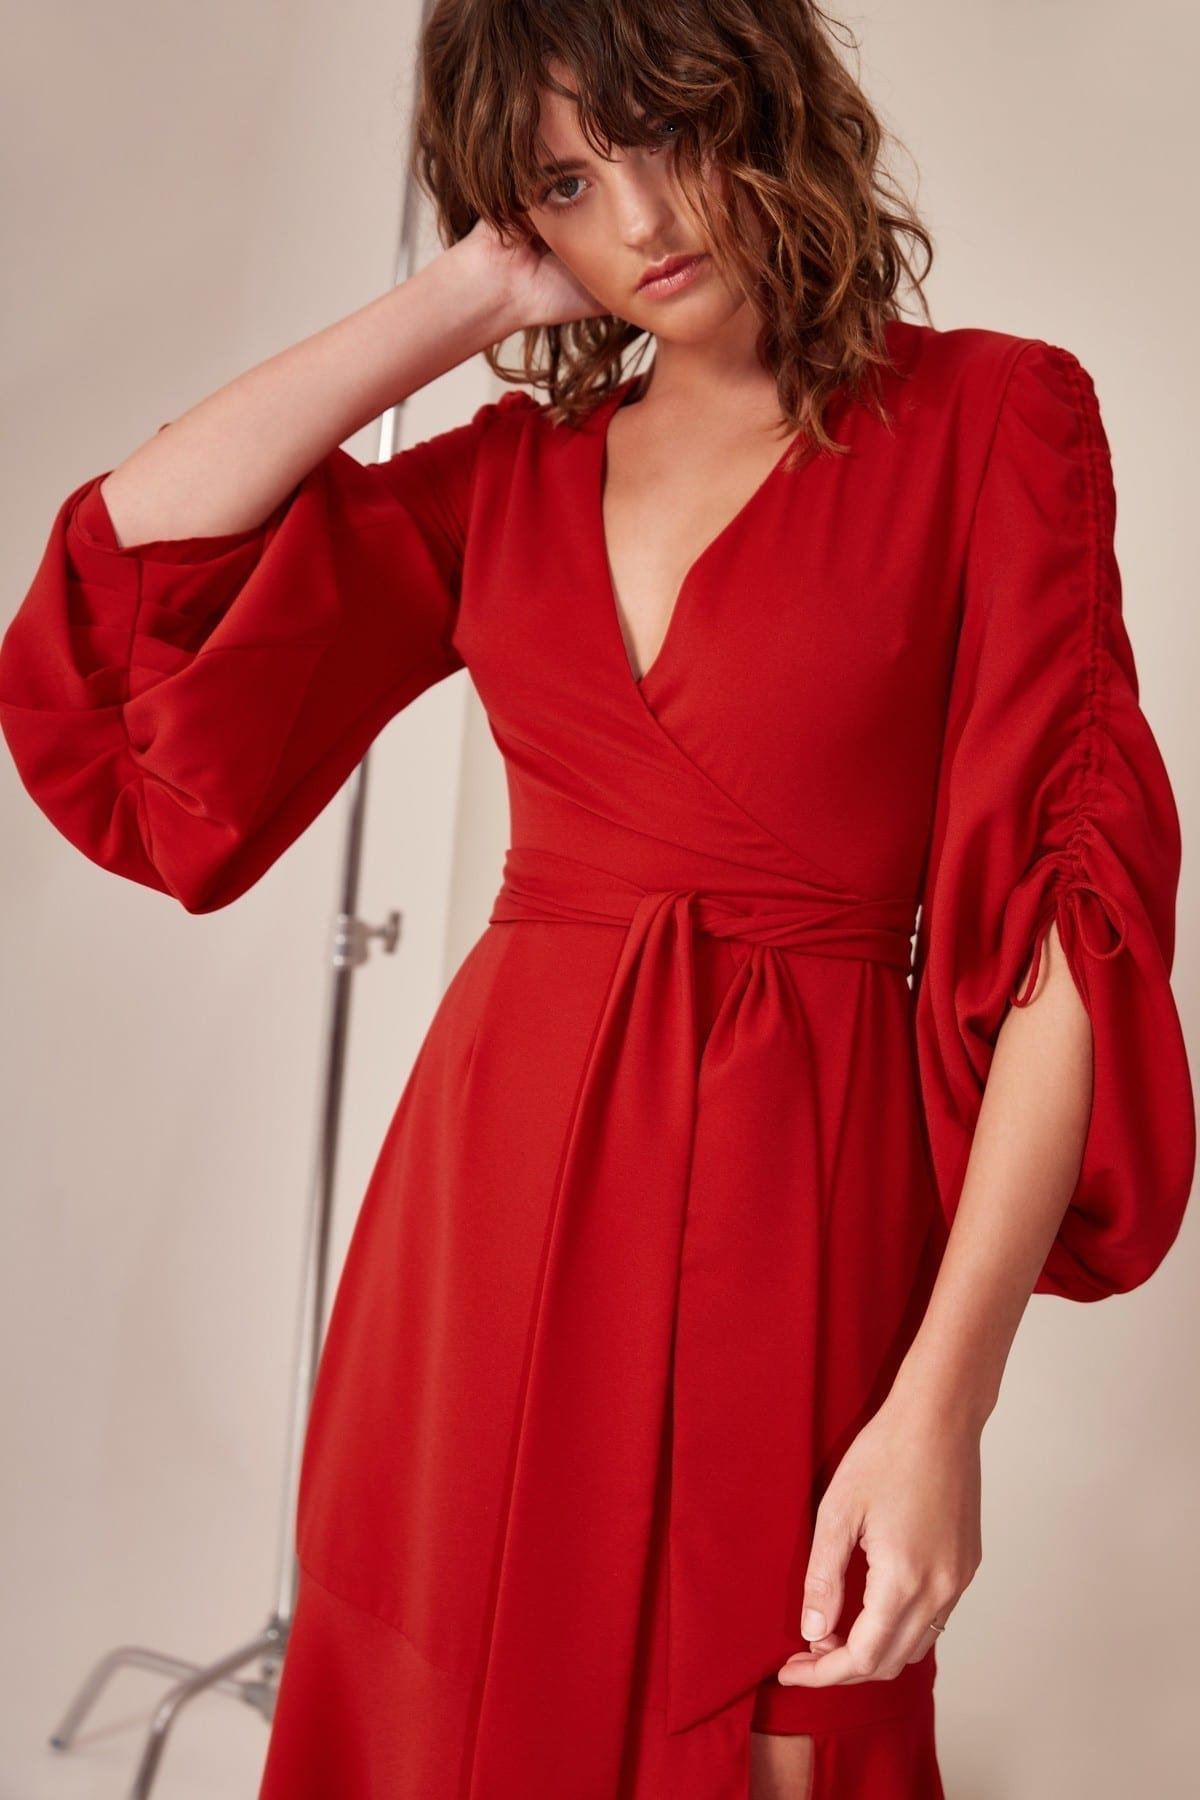 CMEO COLLECTIVE Favours Red Gown 3